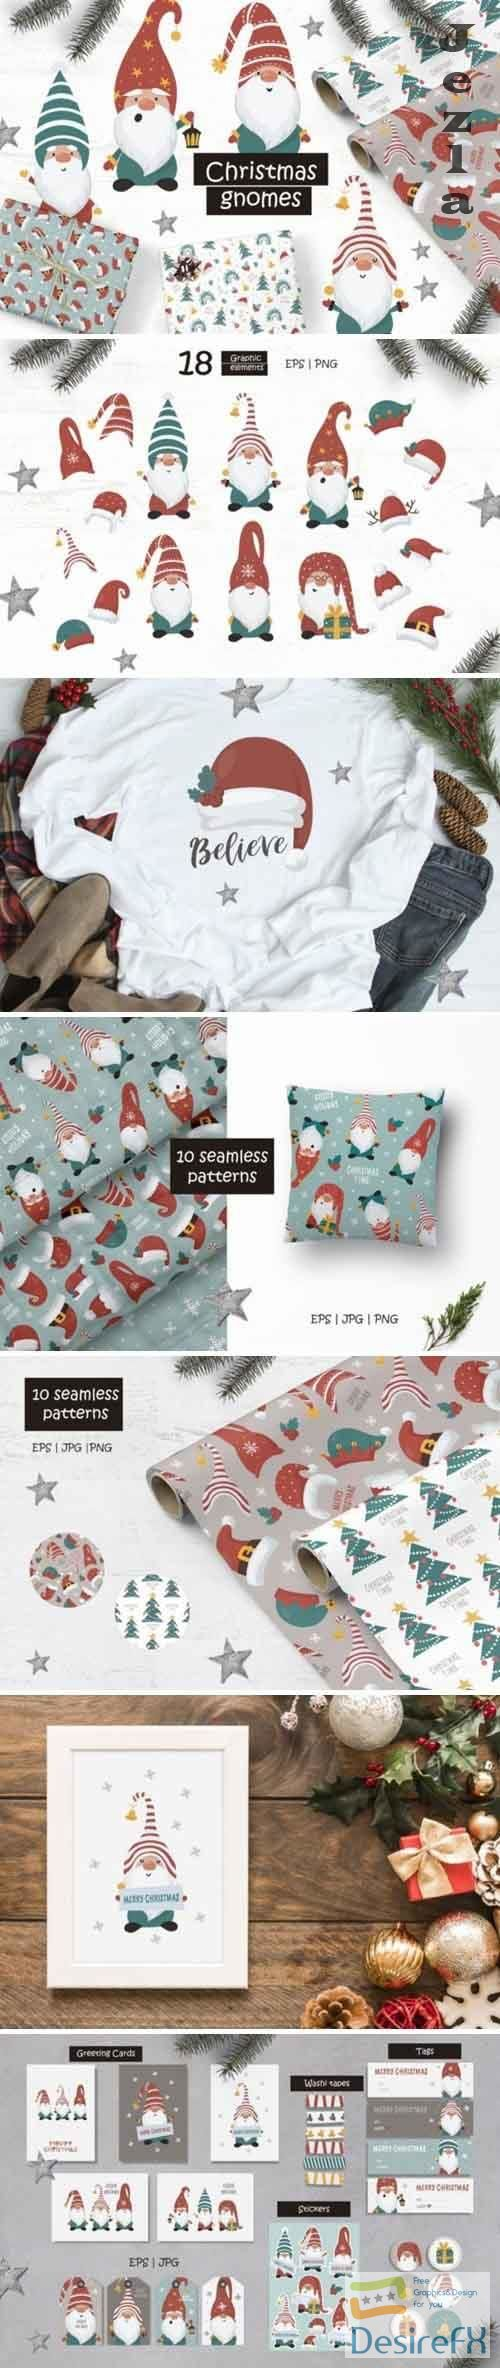 Christmas Gnomes and Patterns - 5652971